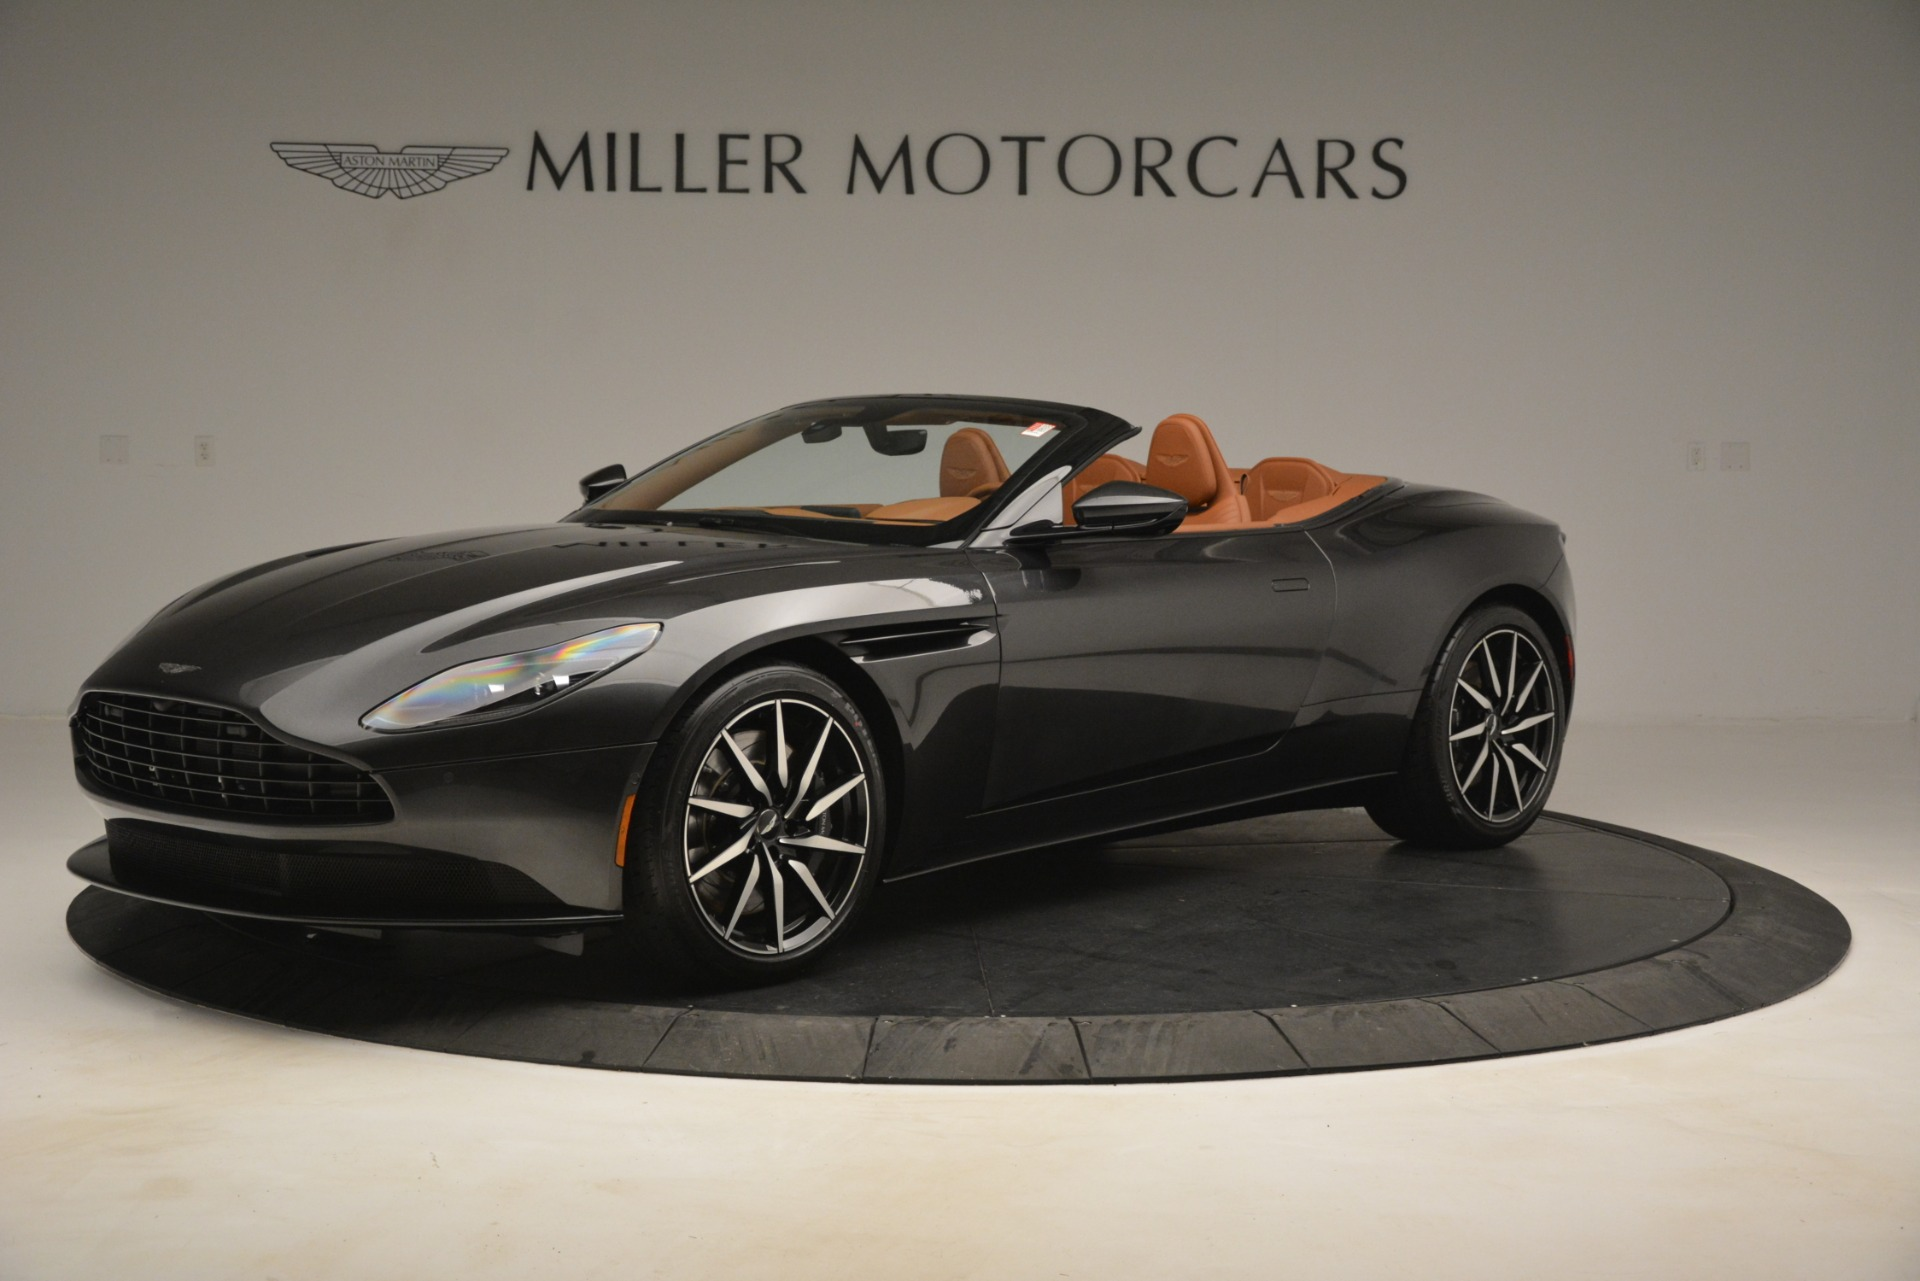 Used 2019 Aston Martin DB11 V8 Volante for sale Sold at Bentley Greenwich in Greenwich CT 06830 1